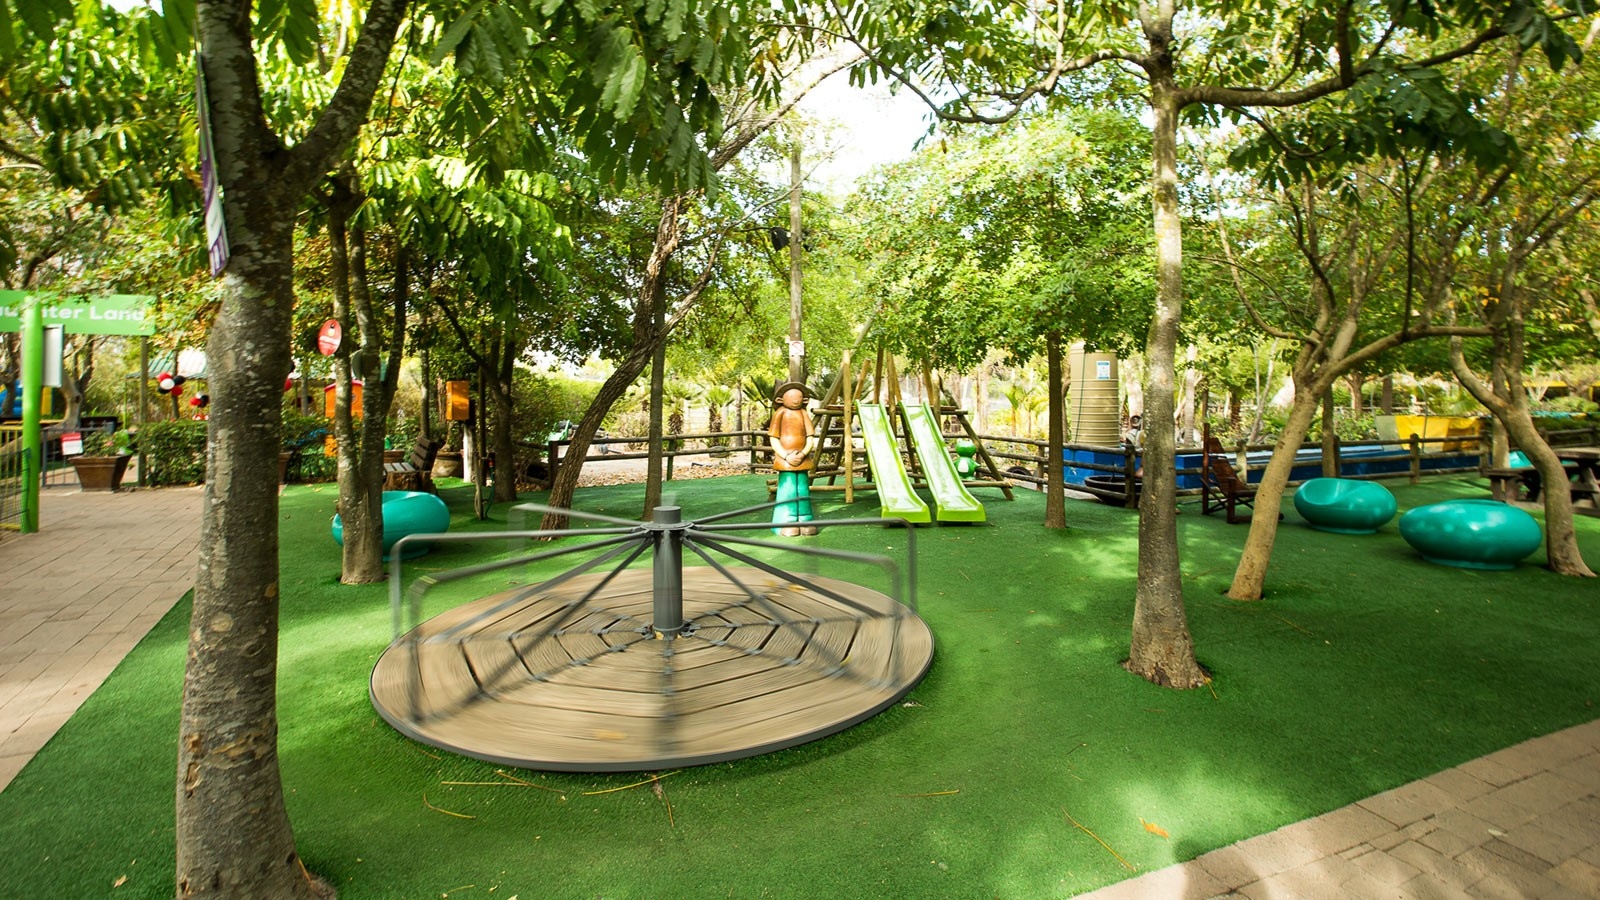 Bugz Playpark | Park & Rides | Outdoor Play Area